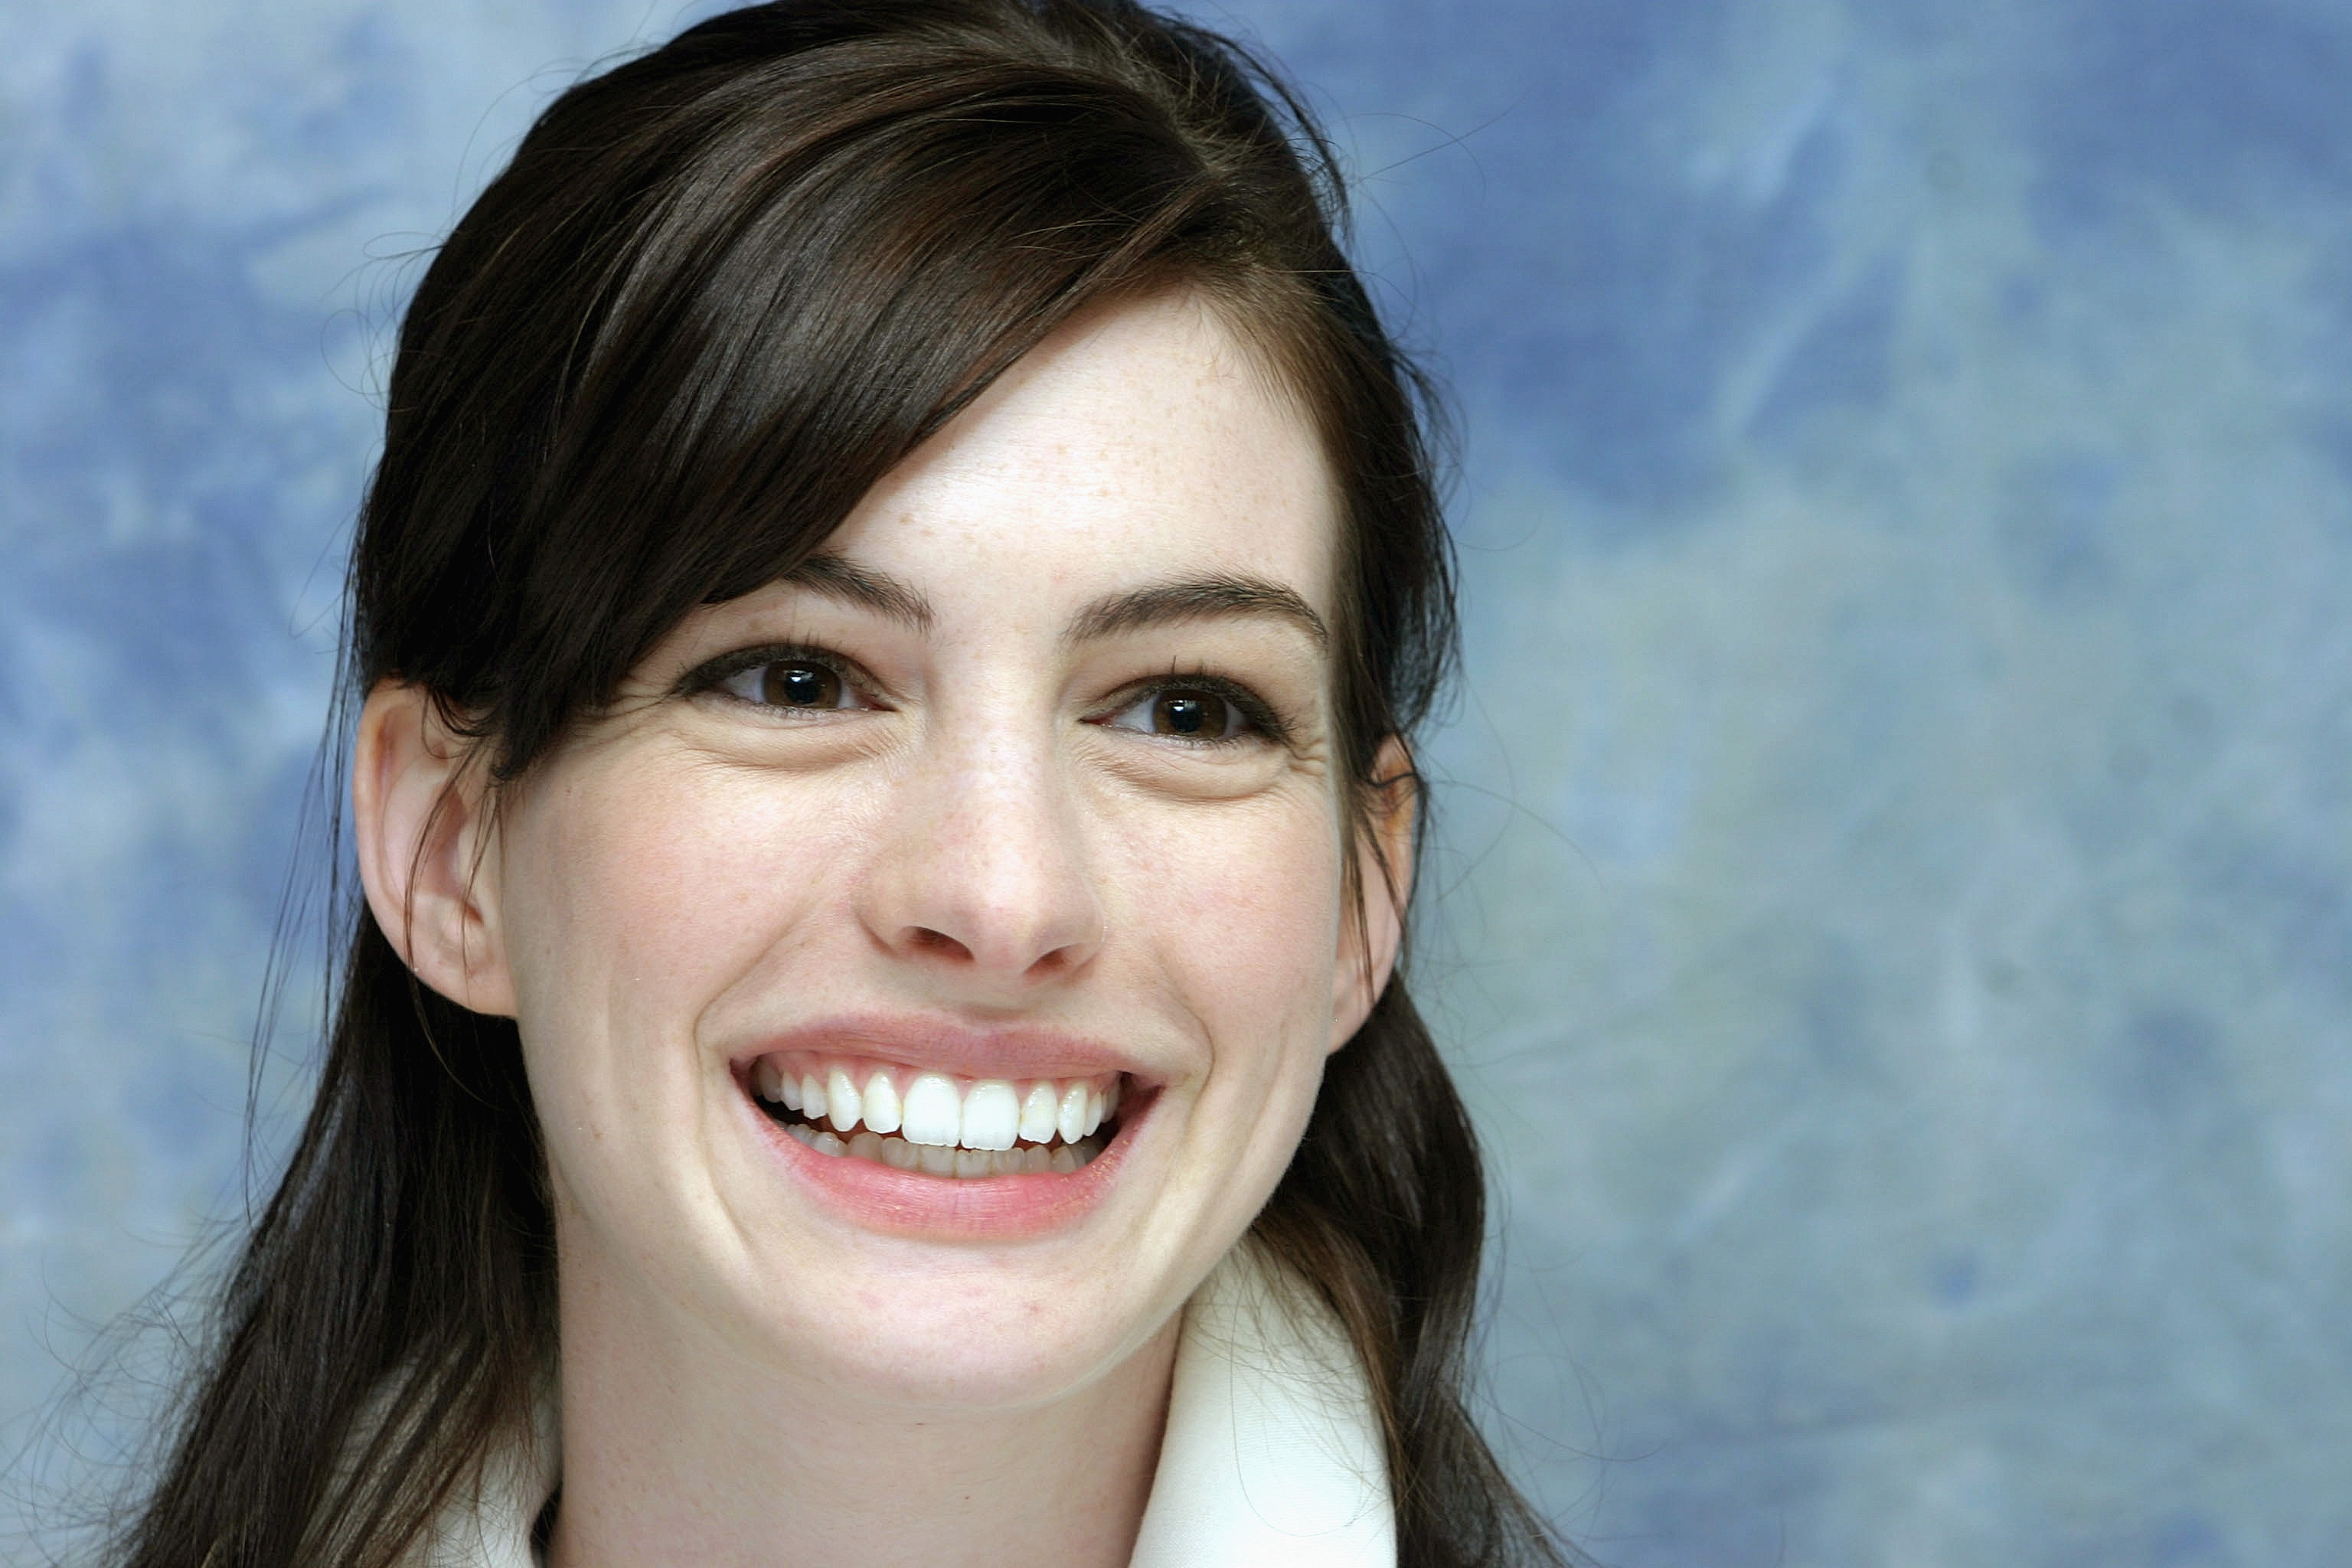 anne hathaway 2015 wallpapers - photo #20